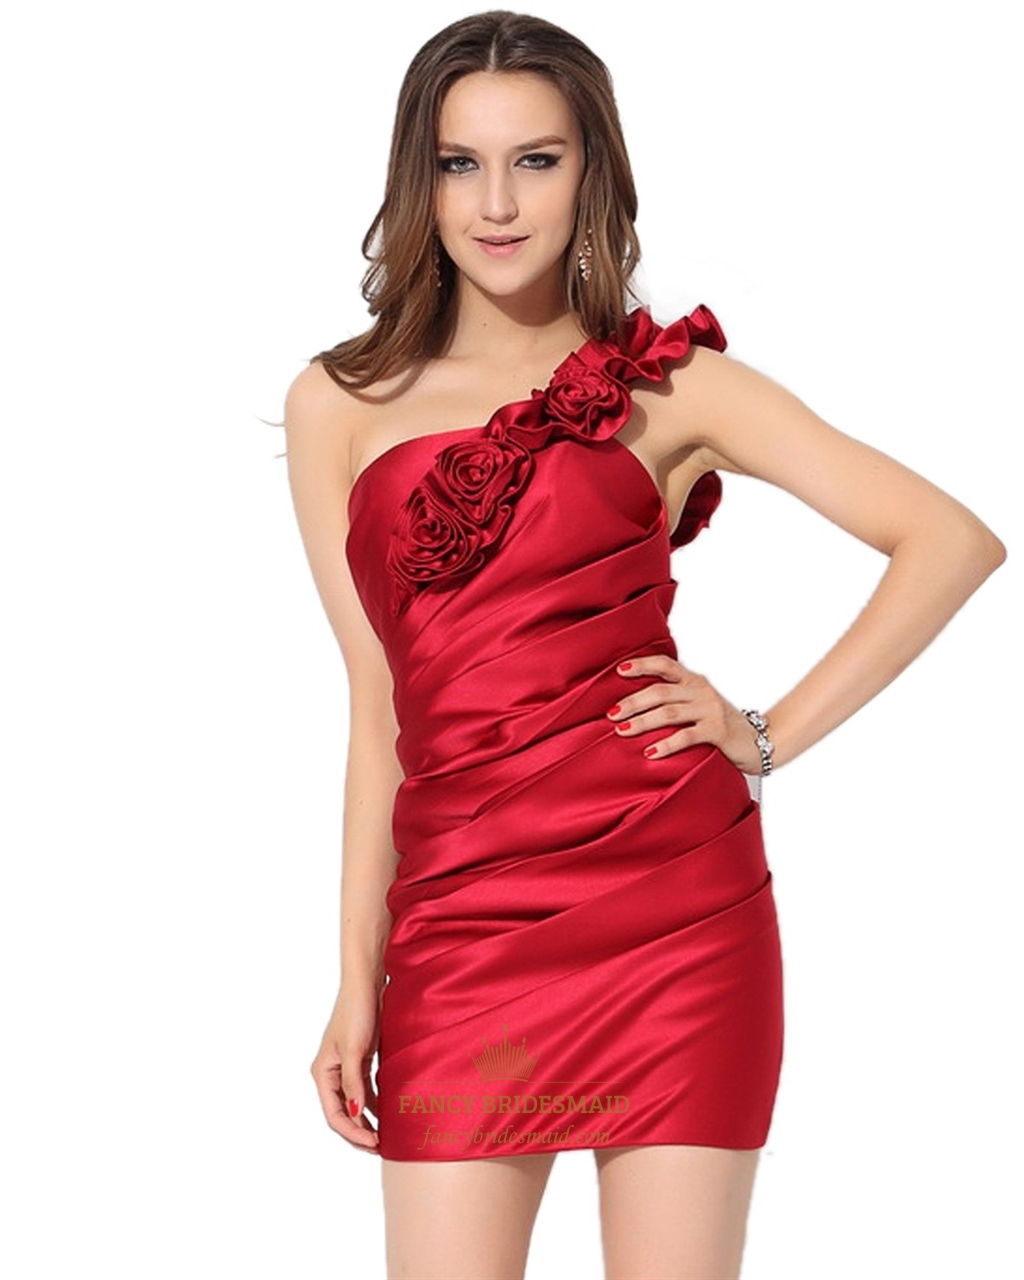 d4b774ce01 Red Ruched One Shoulder Sheath Mini Cocktail Dress With Flower Straps SKU  -NW588